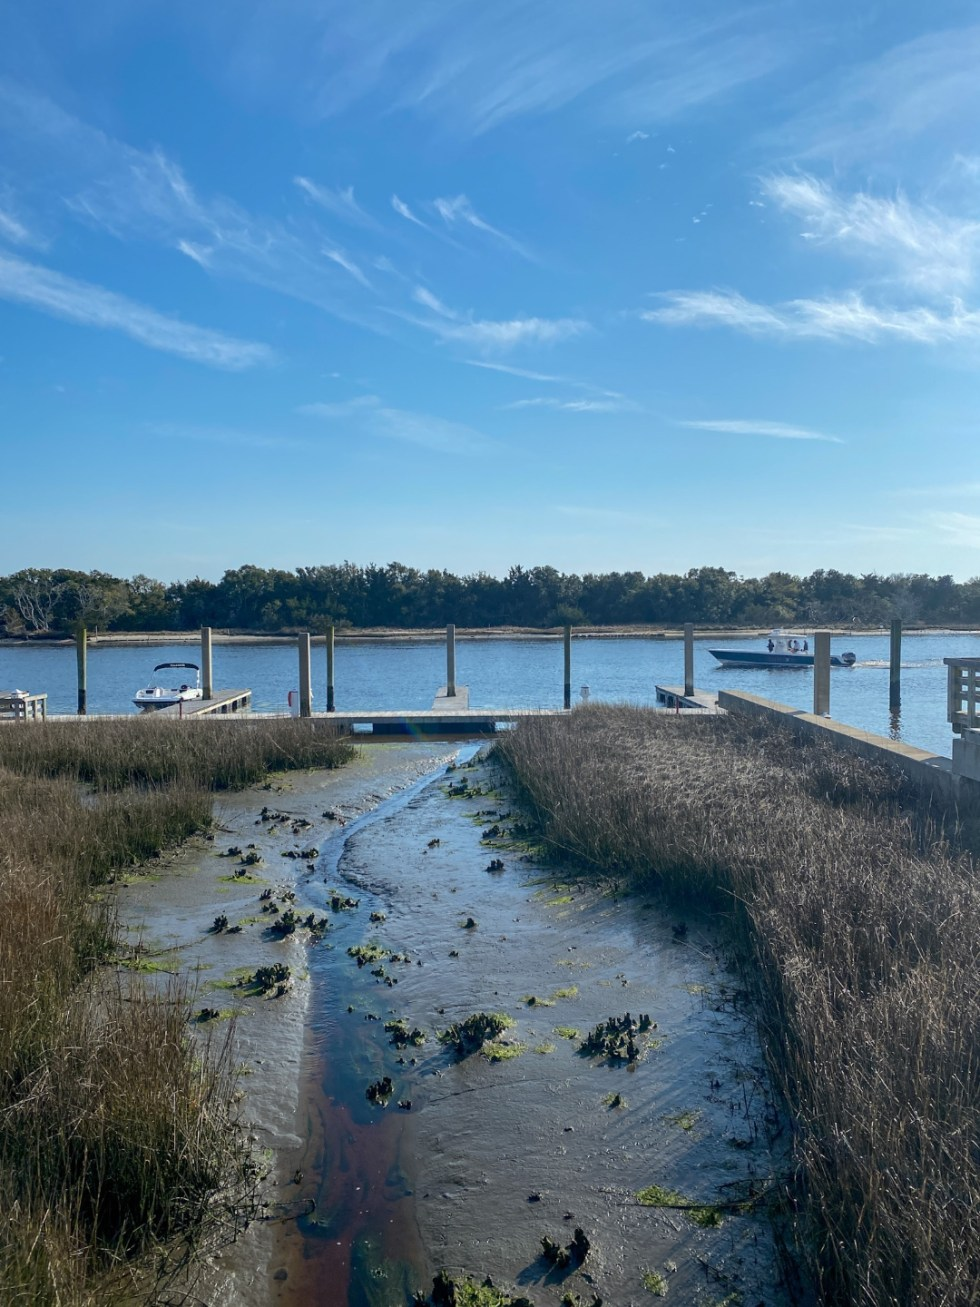 Weekend Travel: The Best Things to Do in Beaufort NC in 48 Hours - I'm Fixin' To - @imfixintoblog |Things to Do in Beaufort NC by popular NC travel blog, I'm Fixin' To: image of some boats on the water.